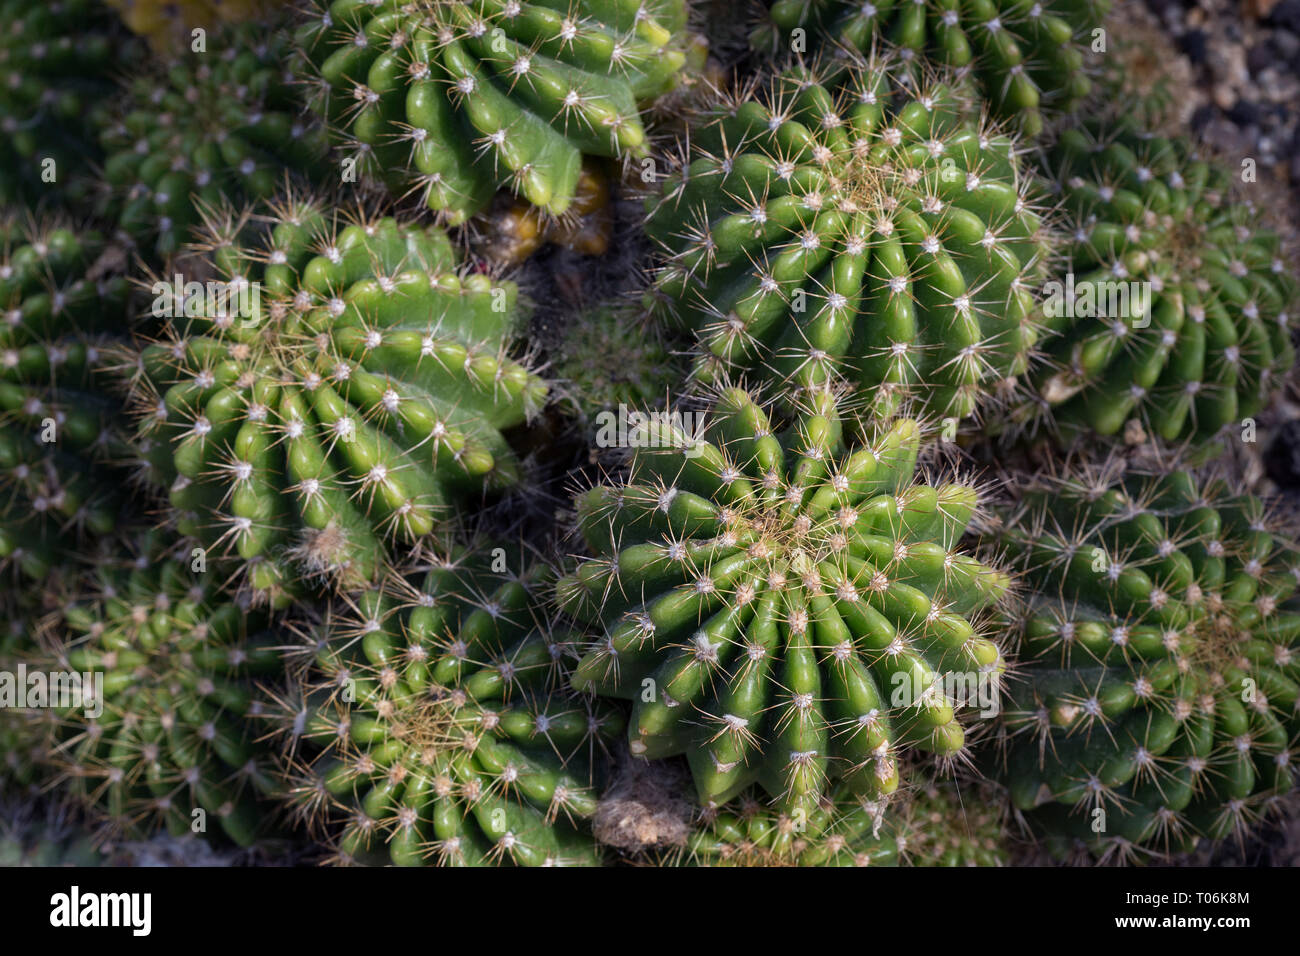 Close-up of several spiky Echinopsis calochlora cacti viewed from above. Stock Photo